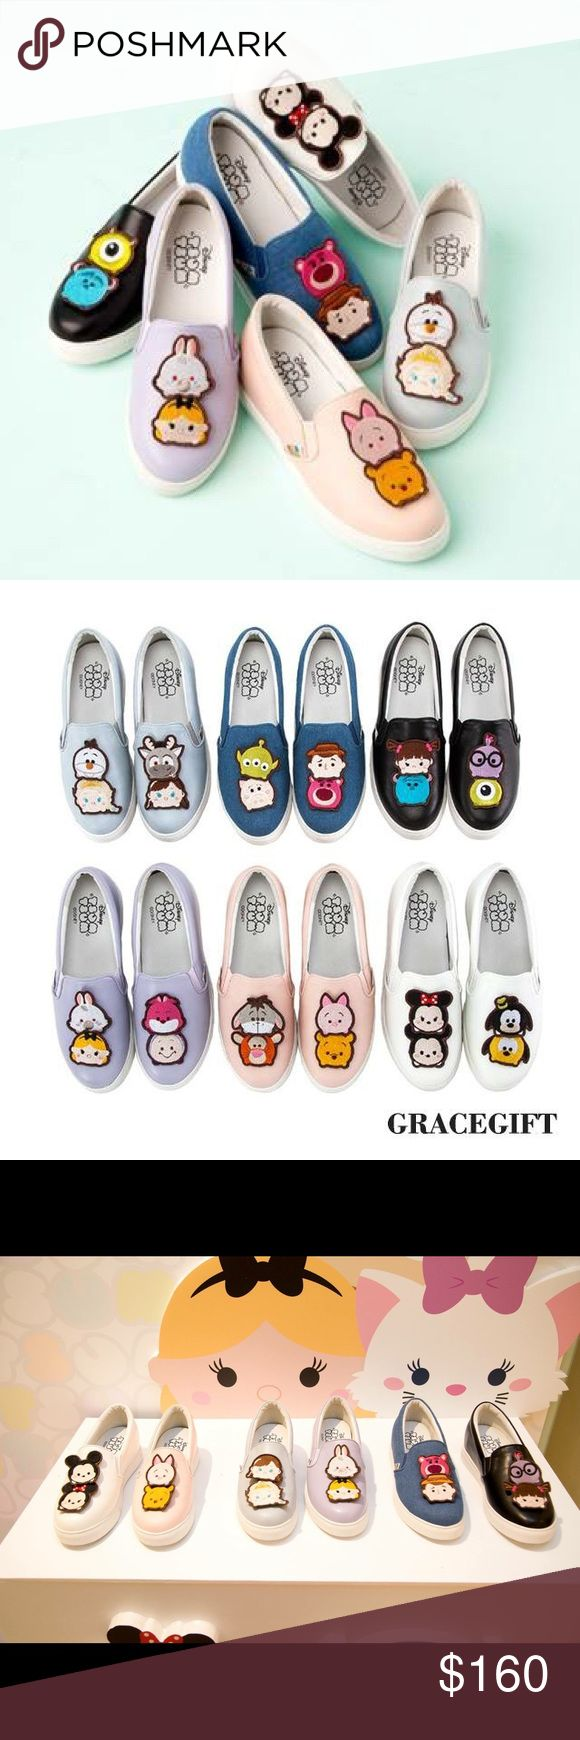 Disney tsum taum slip on shoes Pre-order only! These are Disney tsum tsum collaborate with Taiwanese famous shoe brand Grace Gift. Comes with tsum tsum tote bag (random), and mug. Please let me know which one and which size you would like to purchase, I'll make a new listing for you. Please allow 2-3 weeks international shipping time. Shoes